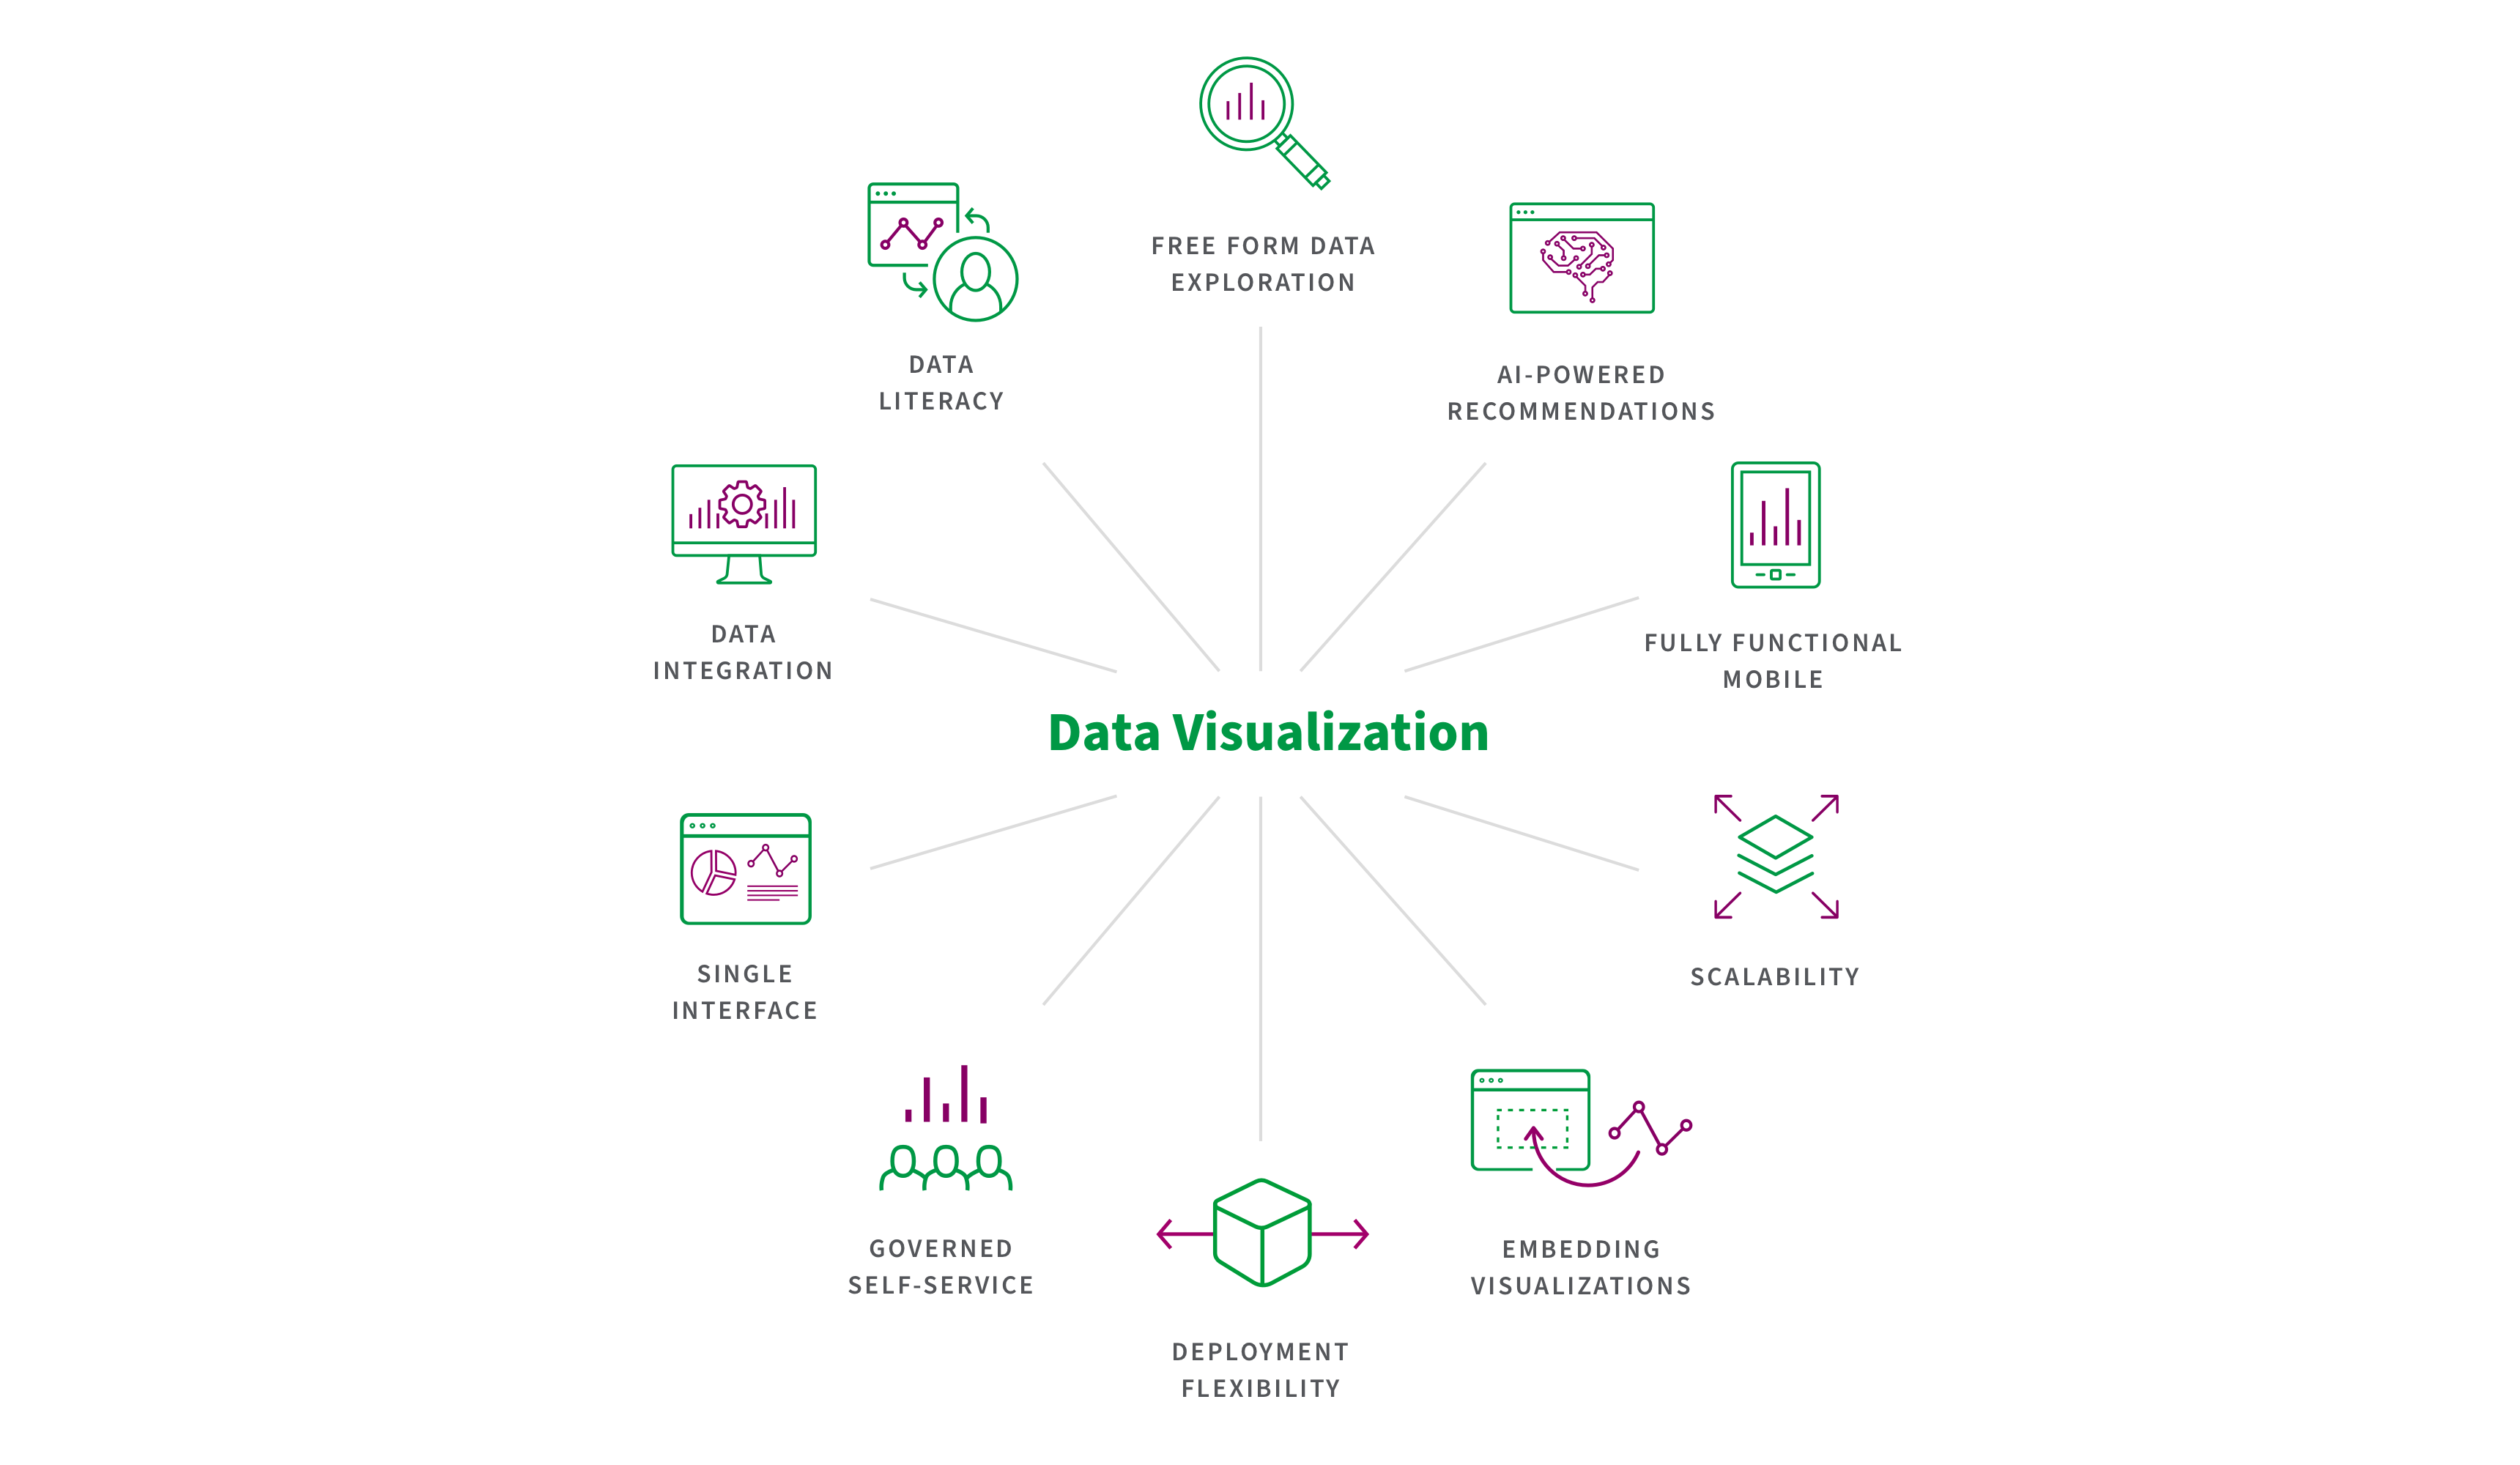 The best data visualization tools go beyond graphs and charts to provide data integration and advanced analytics at scale.